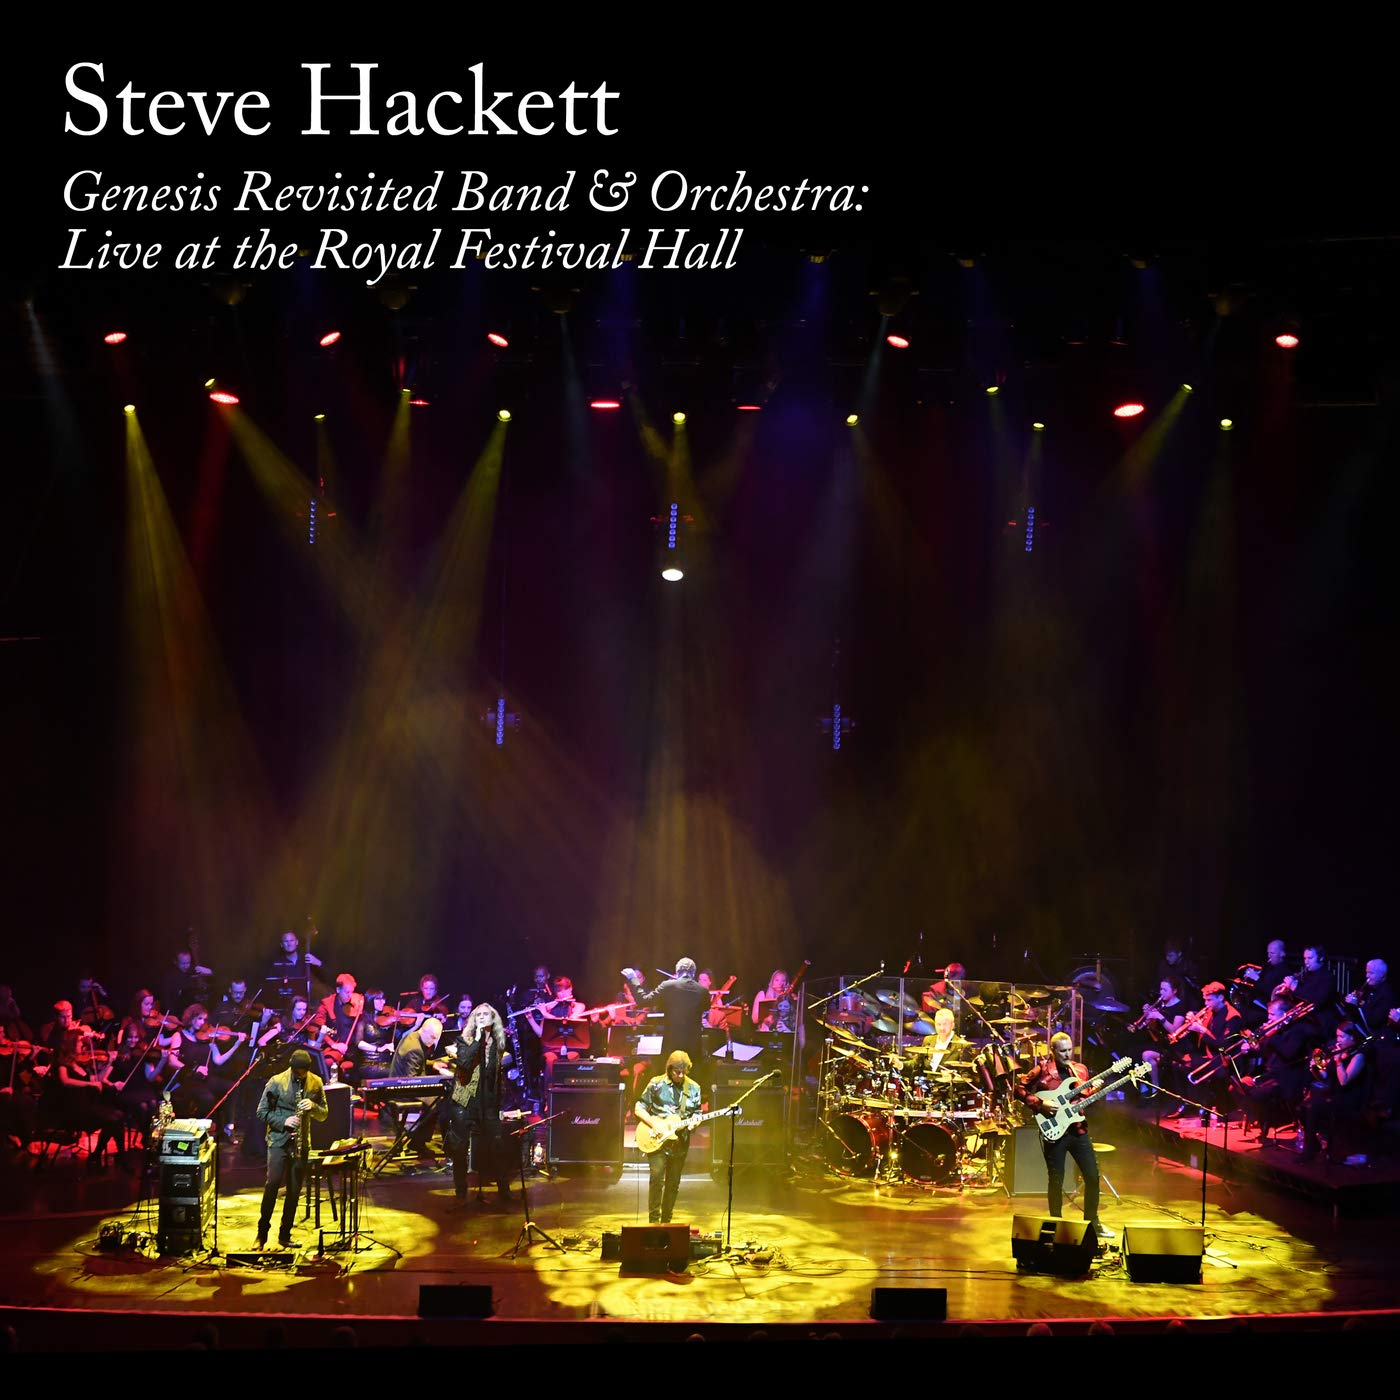 Steve Hackett - Genesis Revisited Band & Orchestra Live At The Royal Festival Hall (2019) [FLAC] Download